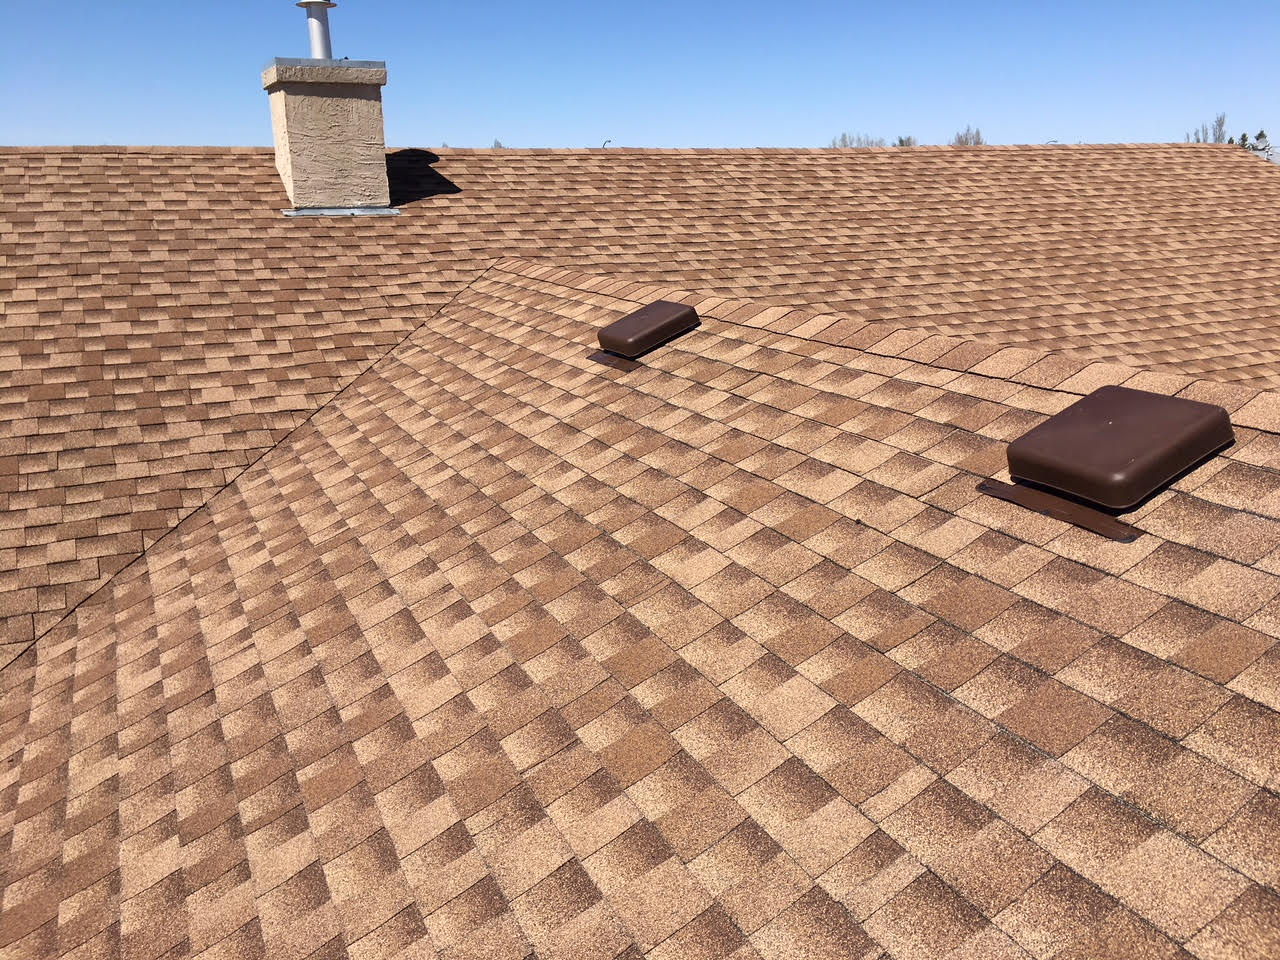 Top 10 Roofing Tools Every Roofer Needs Optimum Roofing